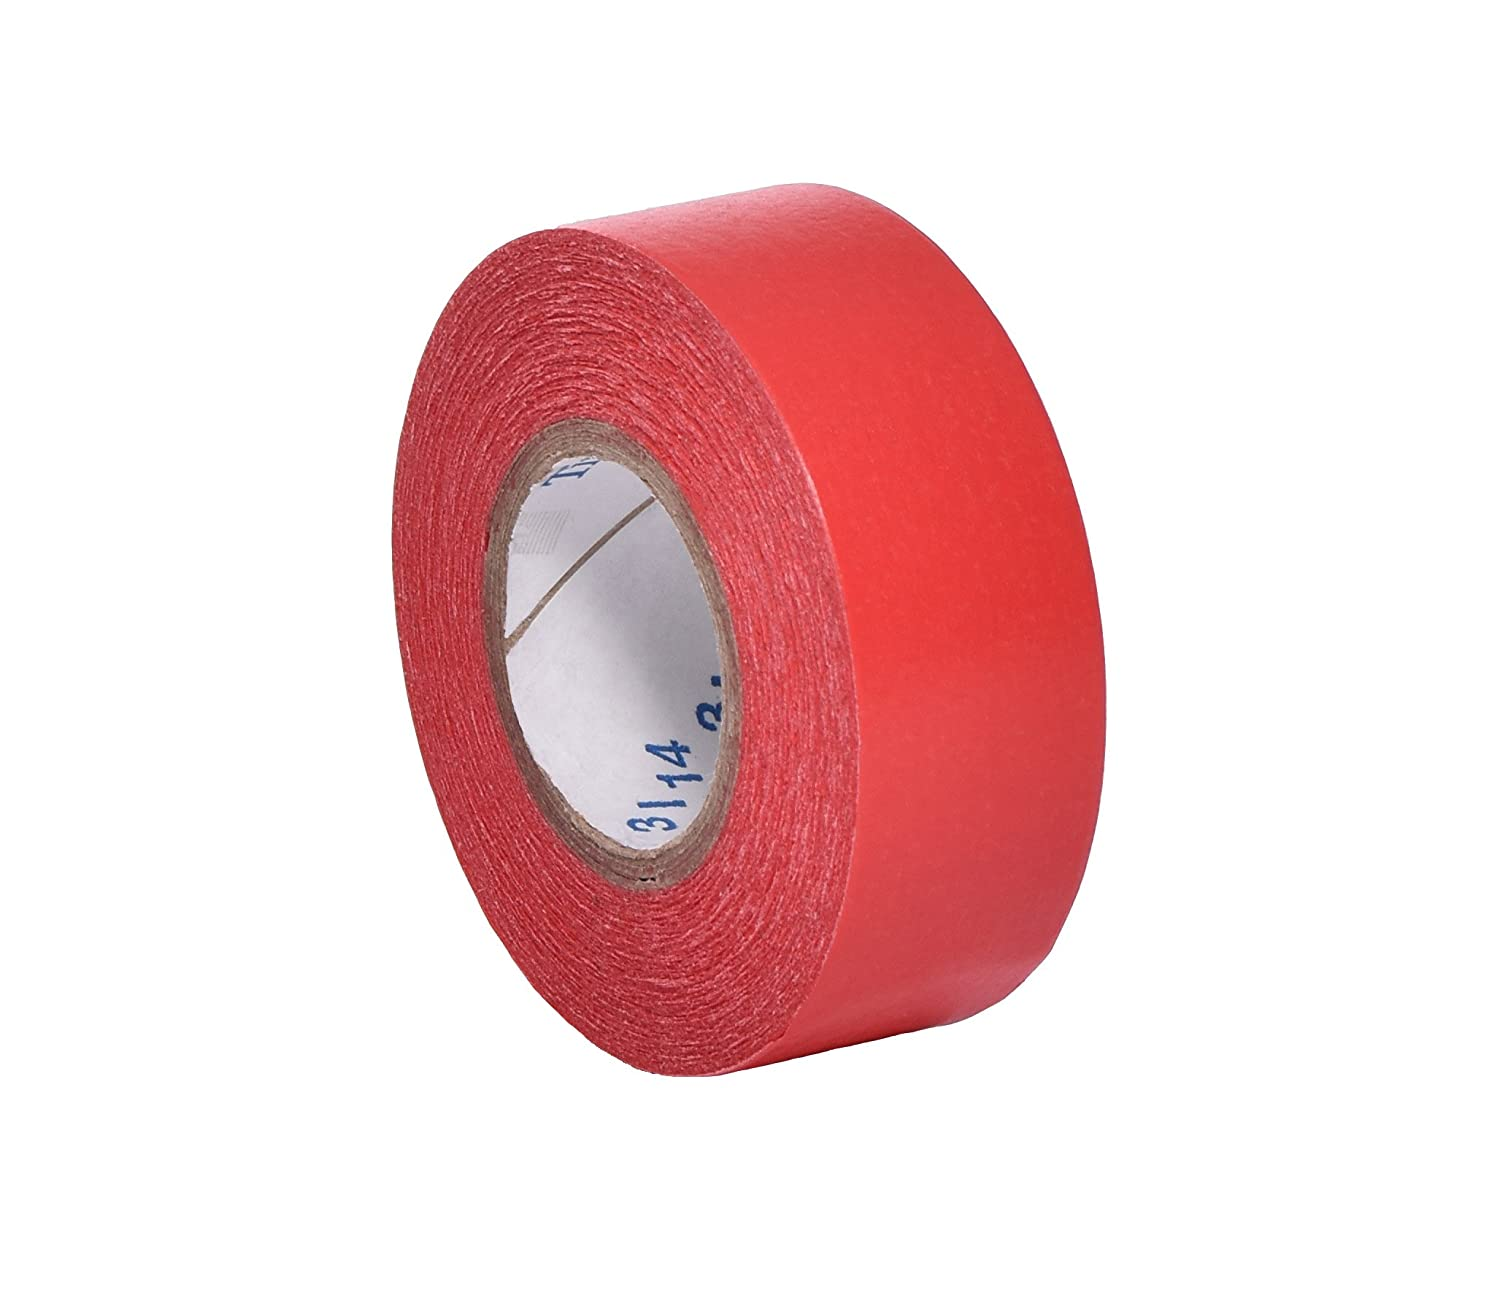 Camlab 1151394 Labelling Tape, 3/4' Wide, 500'(12.7 m) Long, Blue 3/4 Wide 500(12.7 m) Long